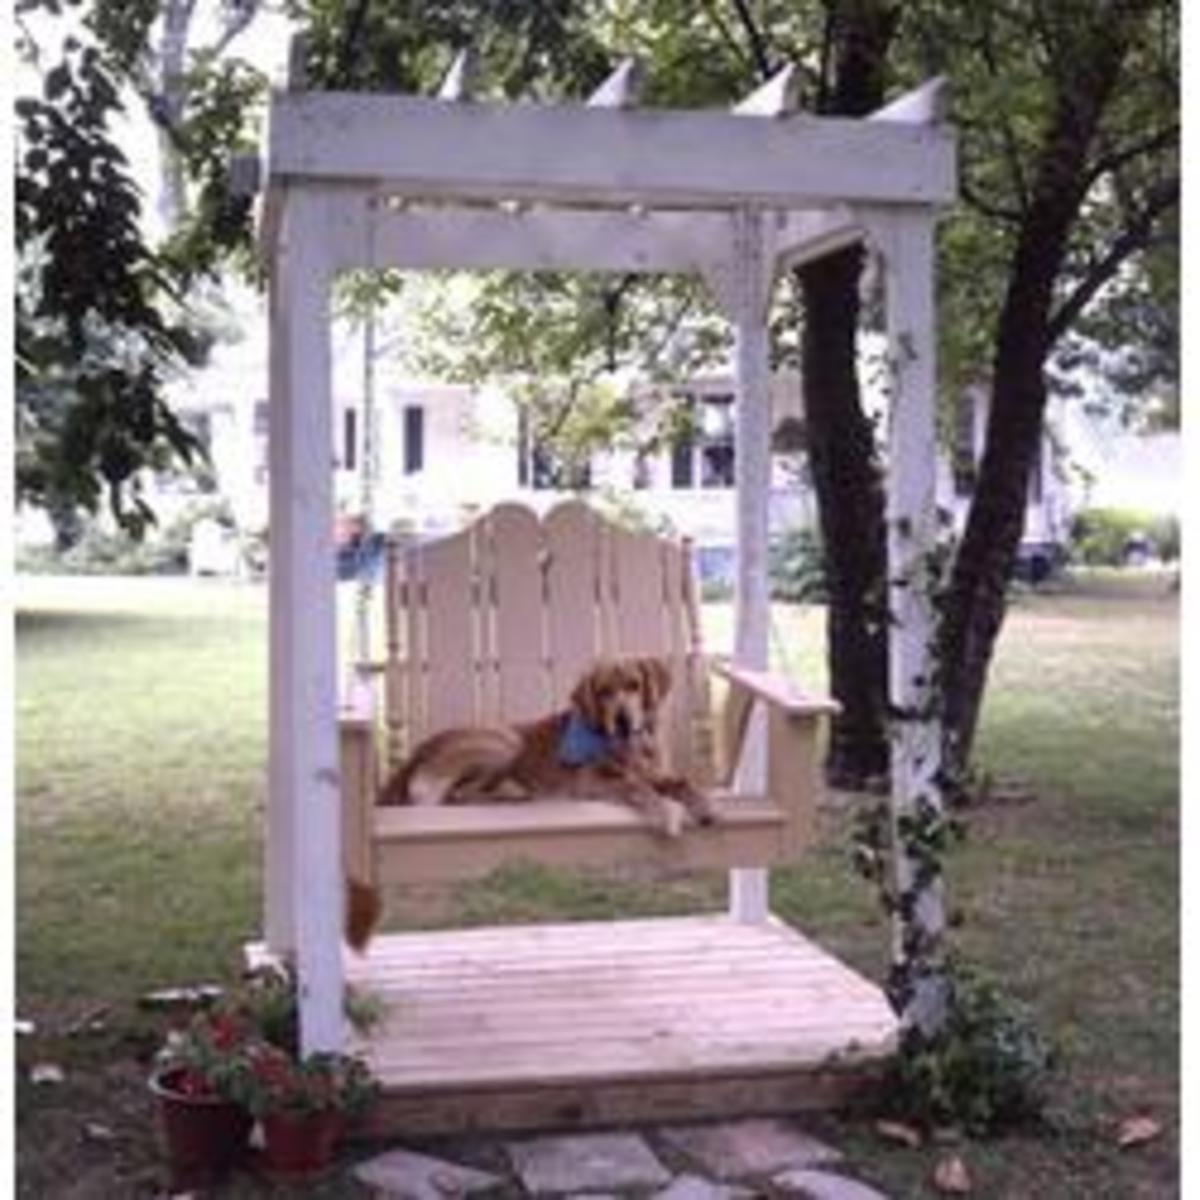 white and wood tones lend this pergola with a swing a little bit of both Victorian and Nantucket Inspired garden design inspiration